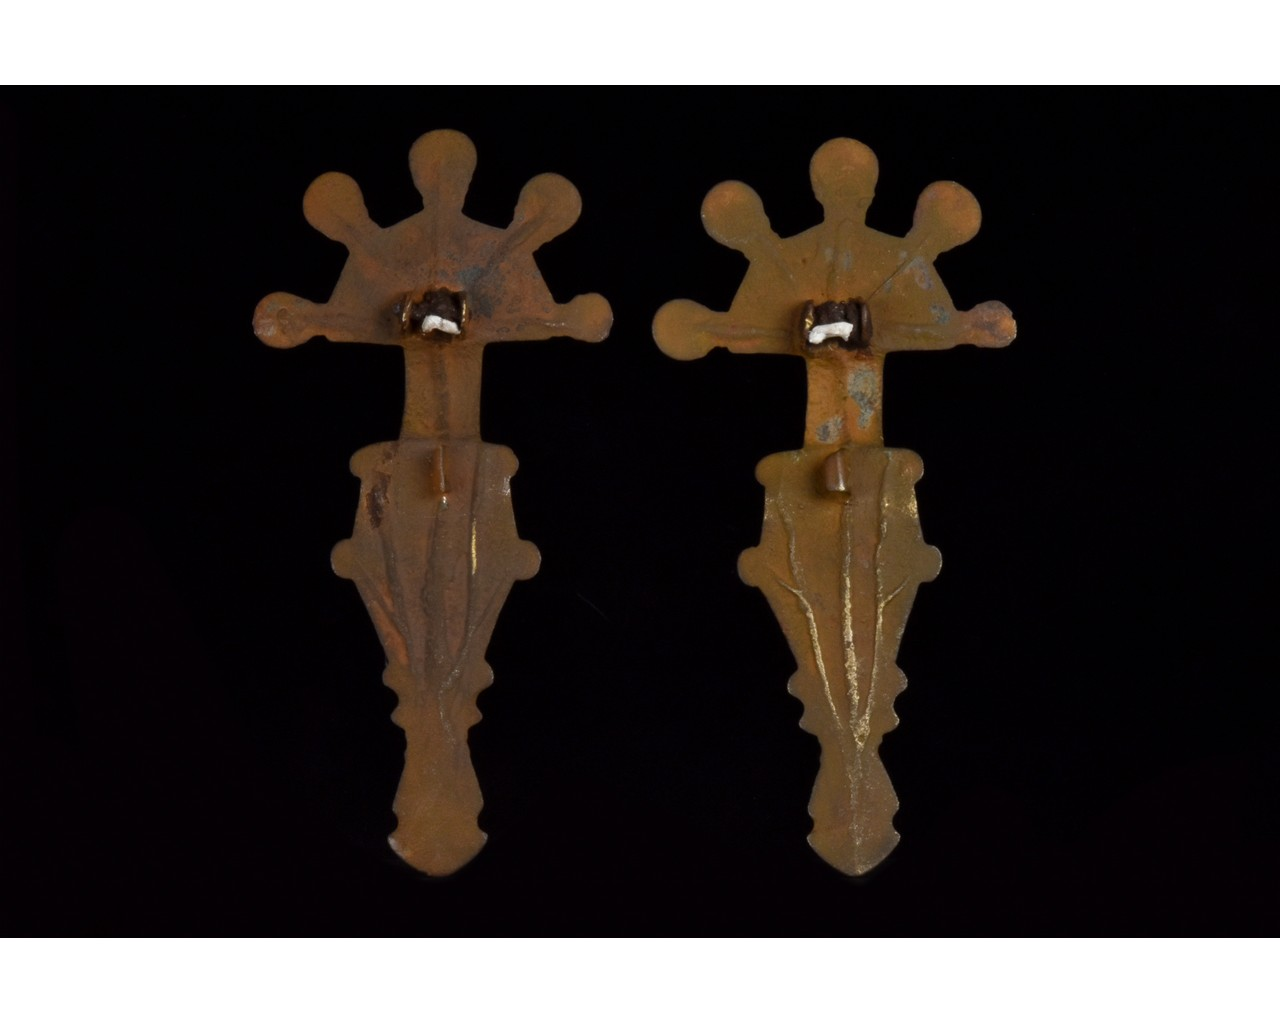 PAIR OF VISIGOTHIC RADIATE HEADED BOW BROOCHES - Image 2 of 8